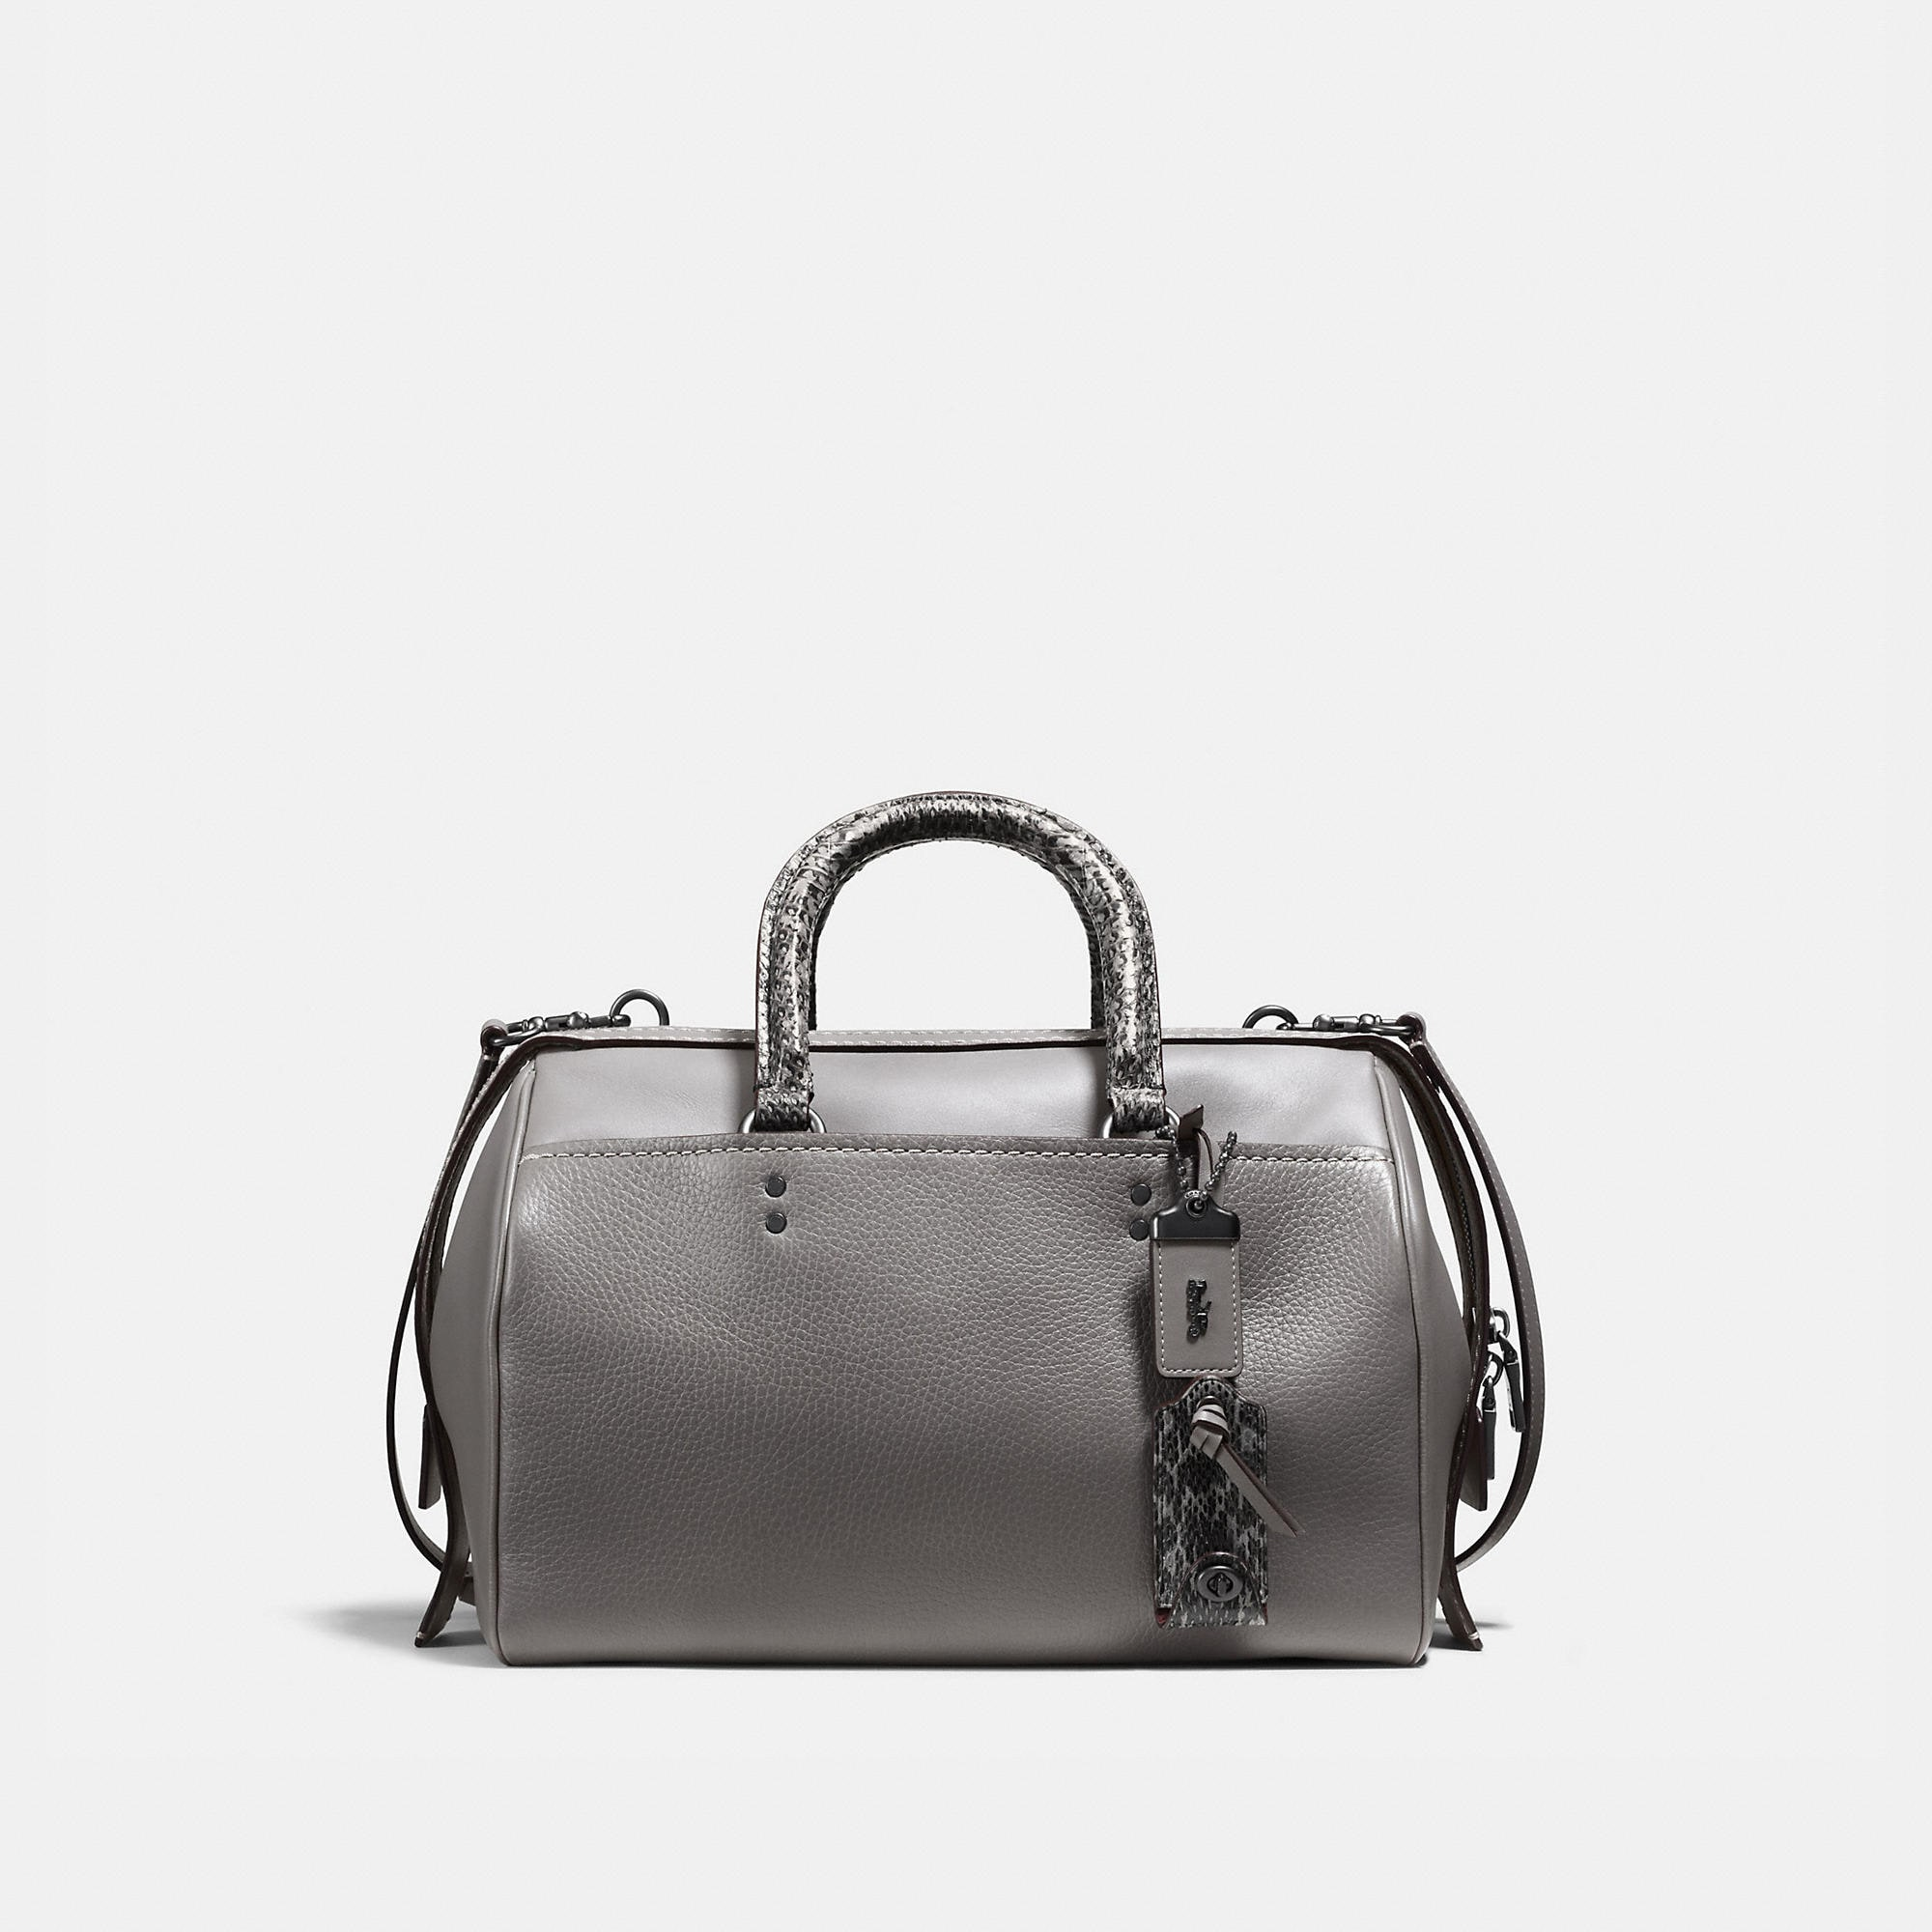 Coach Rogue Satchel In Glovetanned Pebble Leather With Colorblock Snake